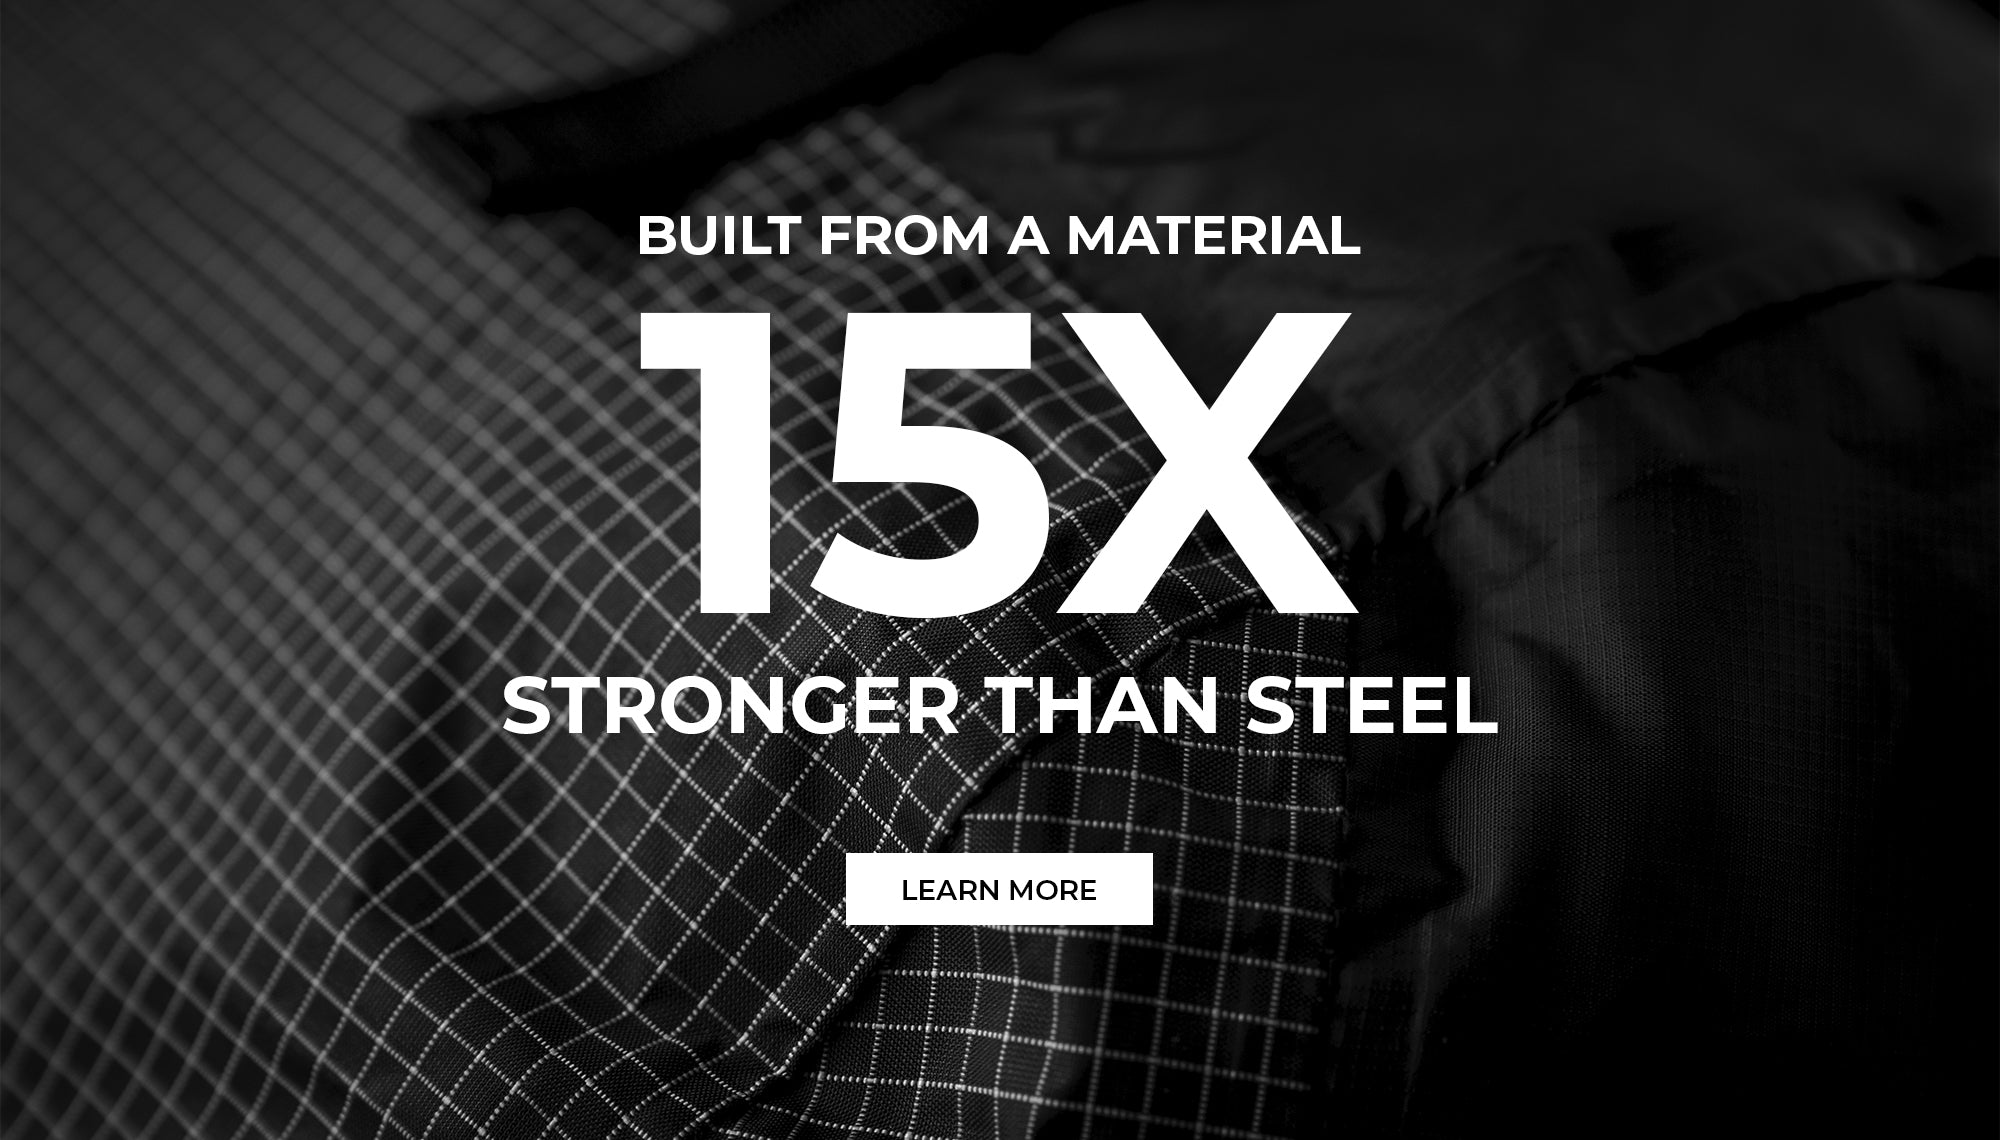 Built from a material 15x stronger than steel. learn more